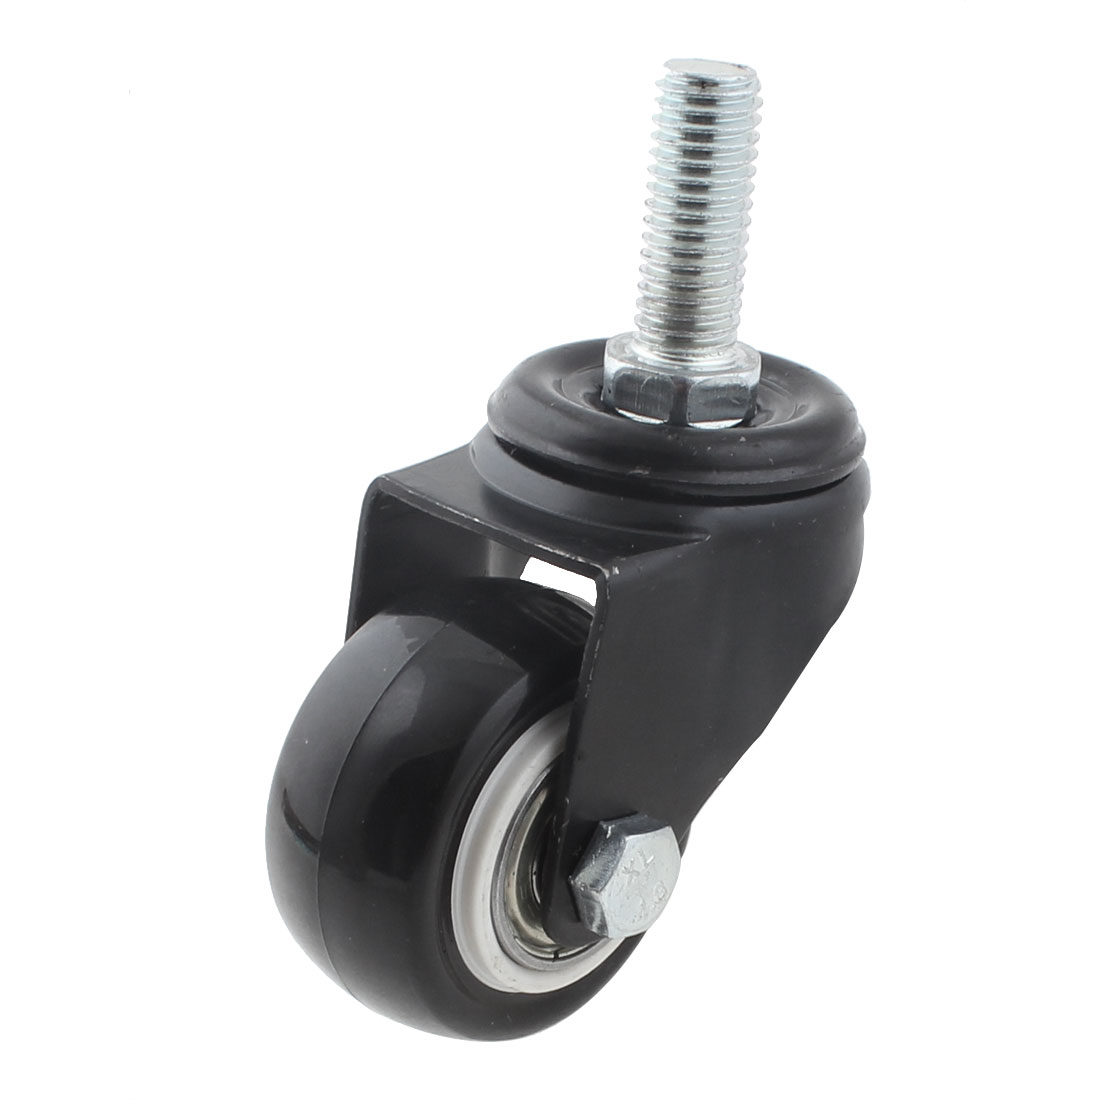 10mm x 25mm Threaded Stem Replacement Office Chair Swivel Caster Wheel Black